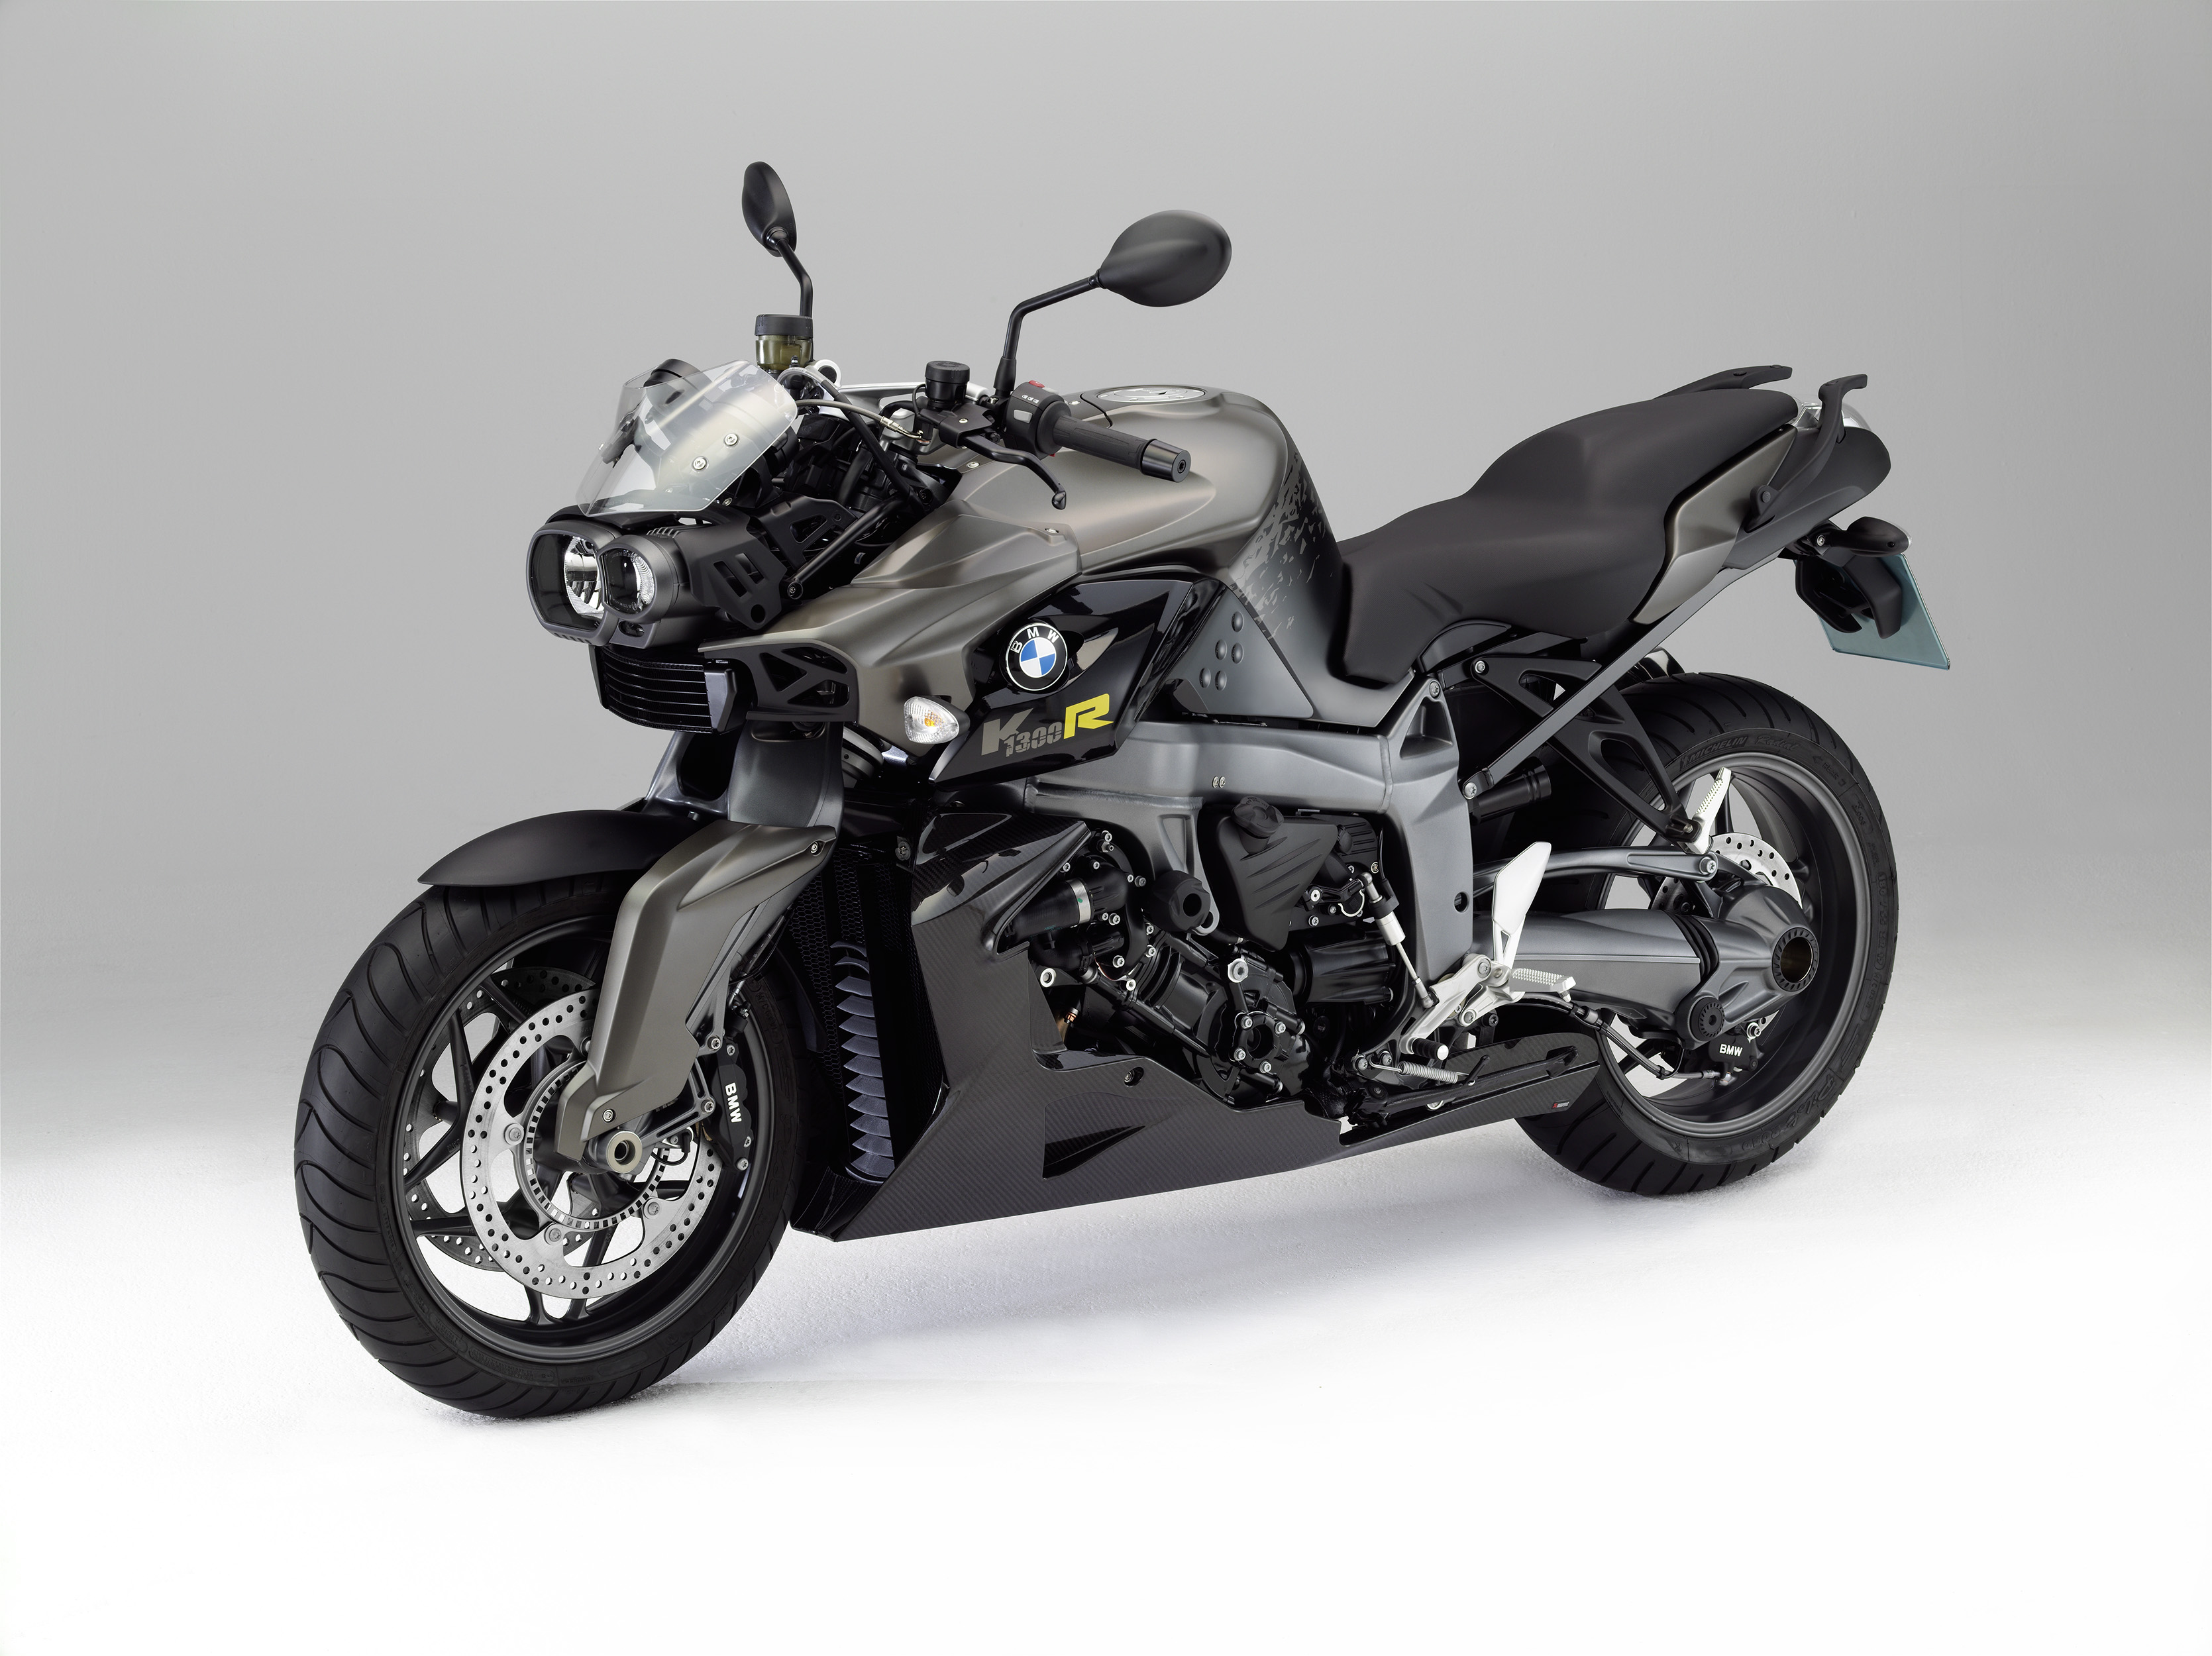 2011 BMW K1300R: pics, specs and information